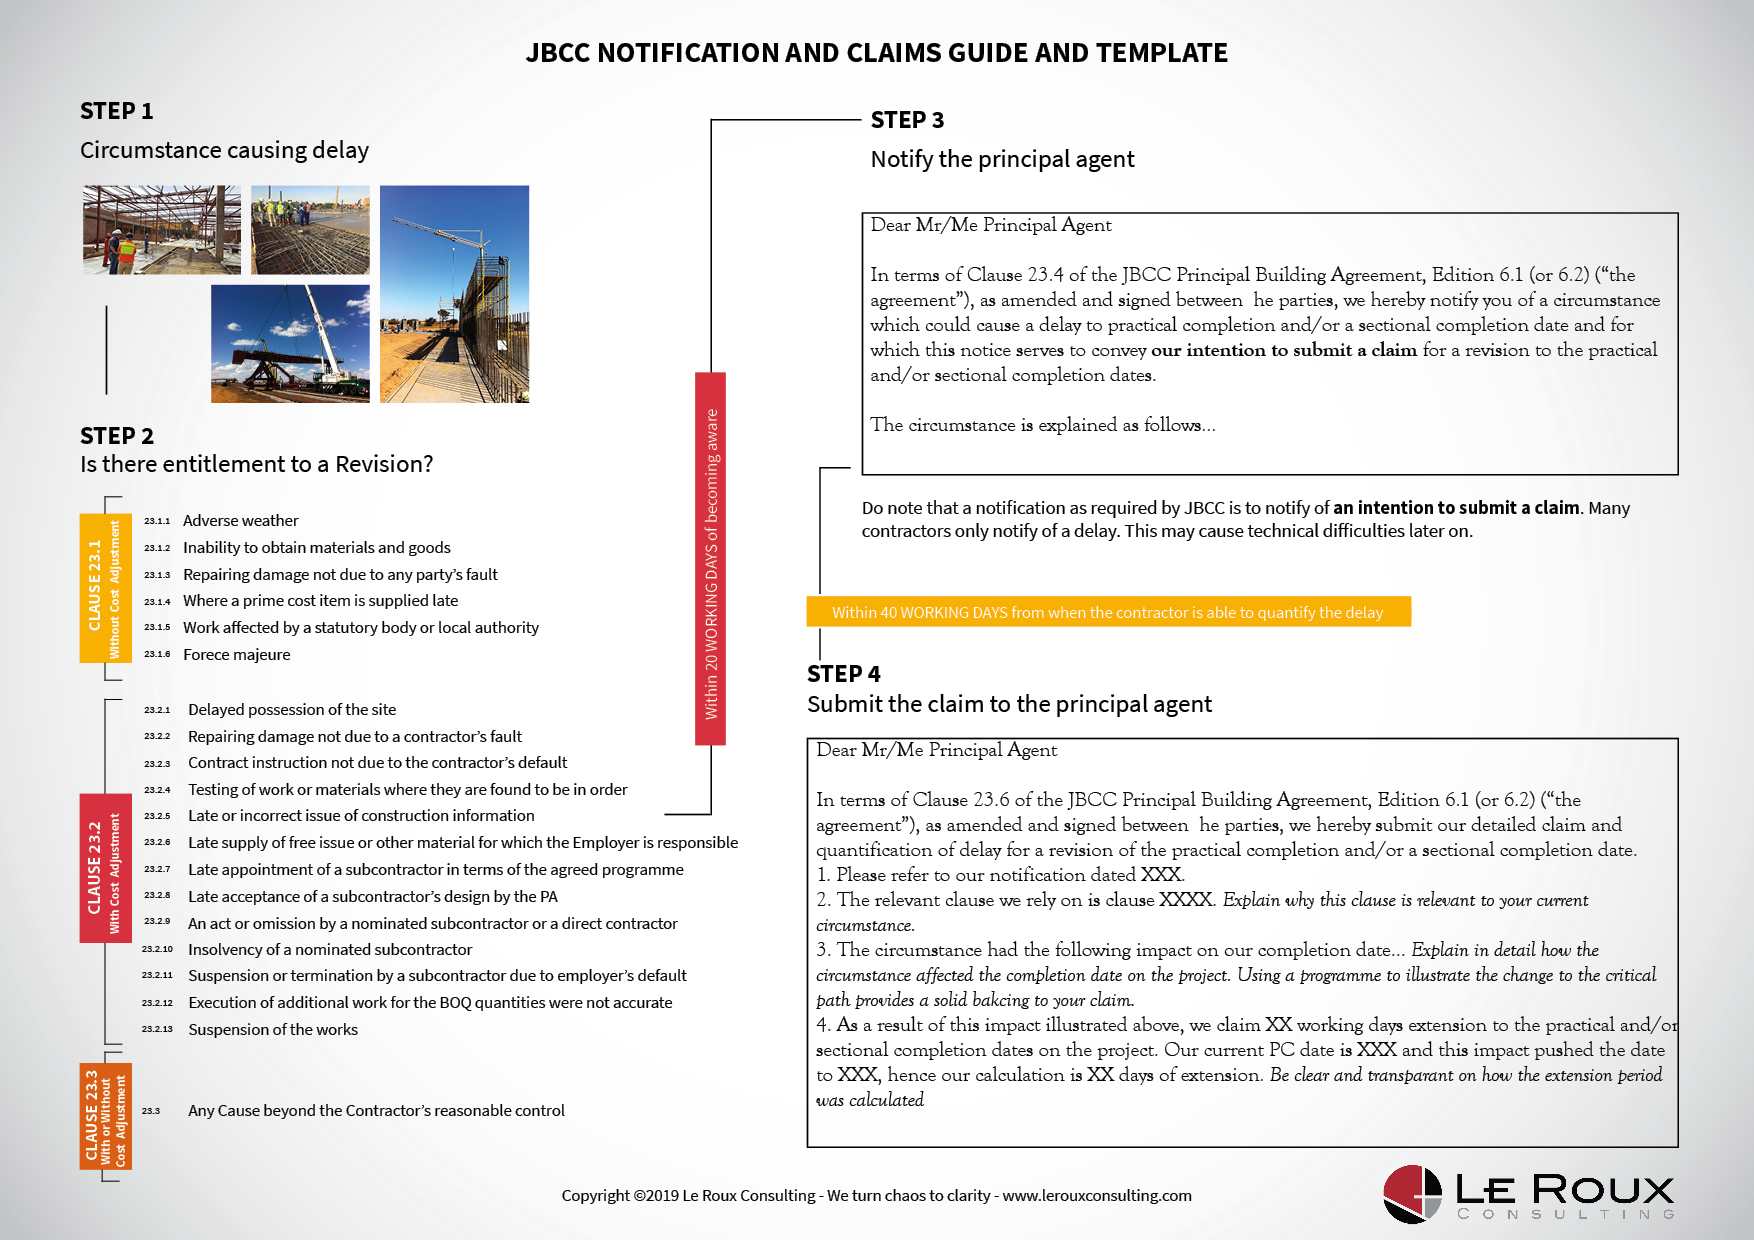 JBCC Contract Articles and Resources - Le Roux Consulting